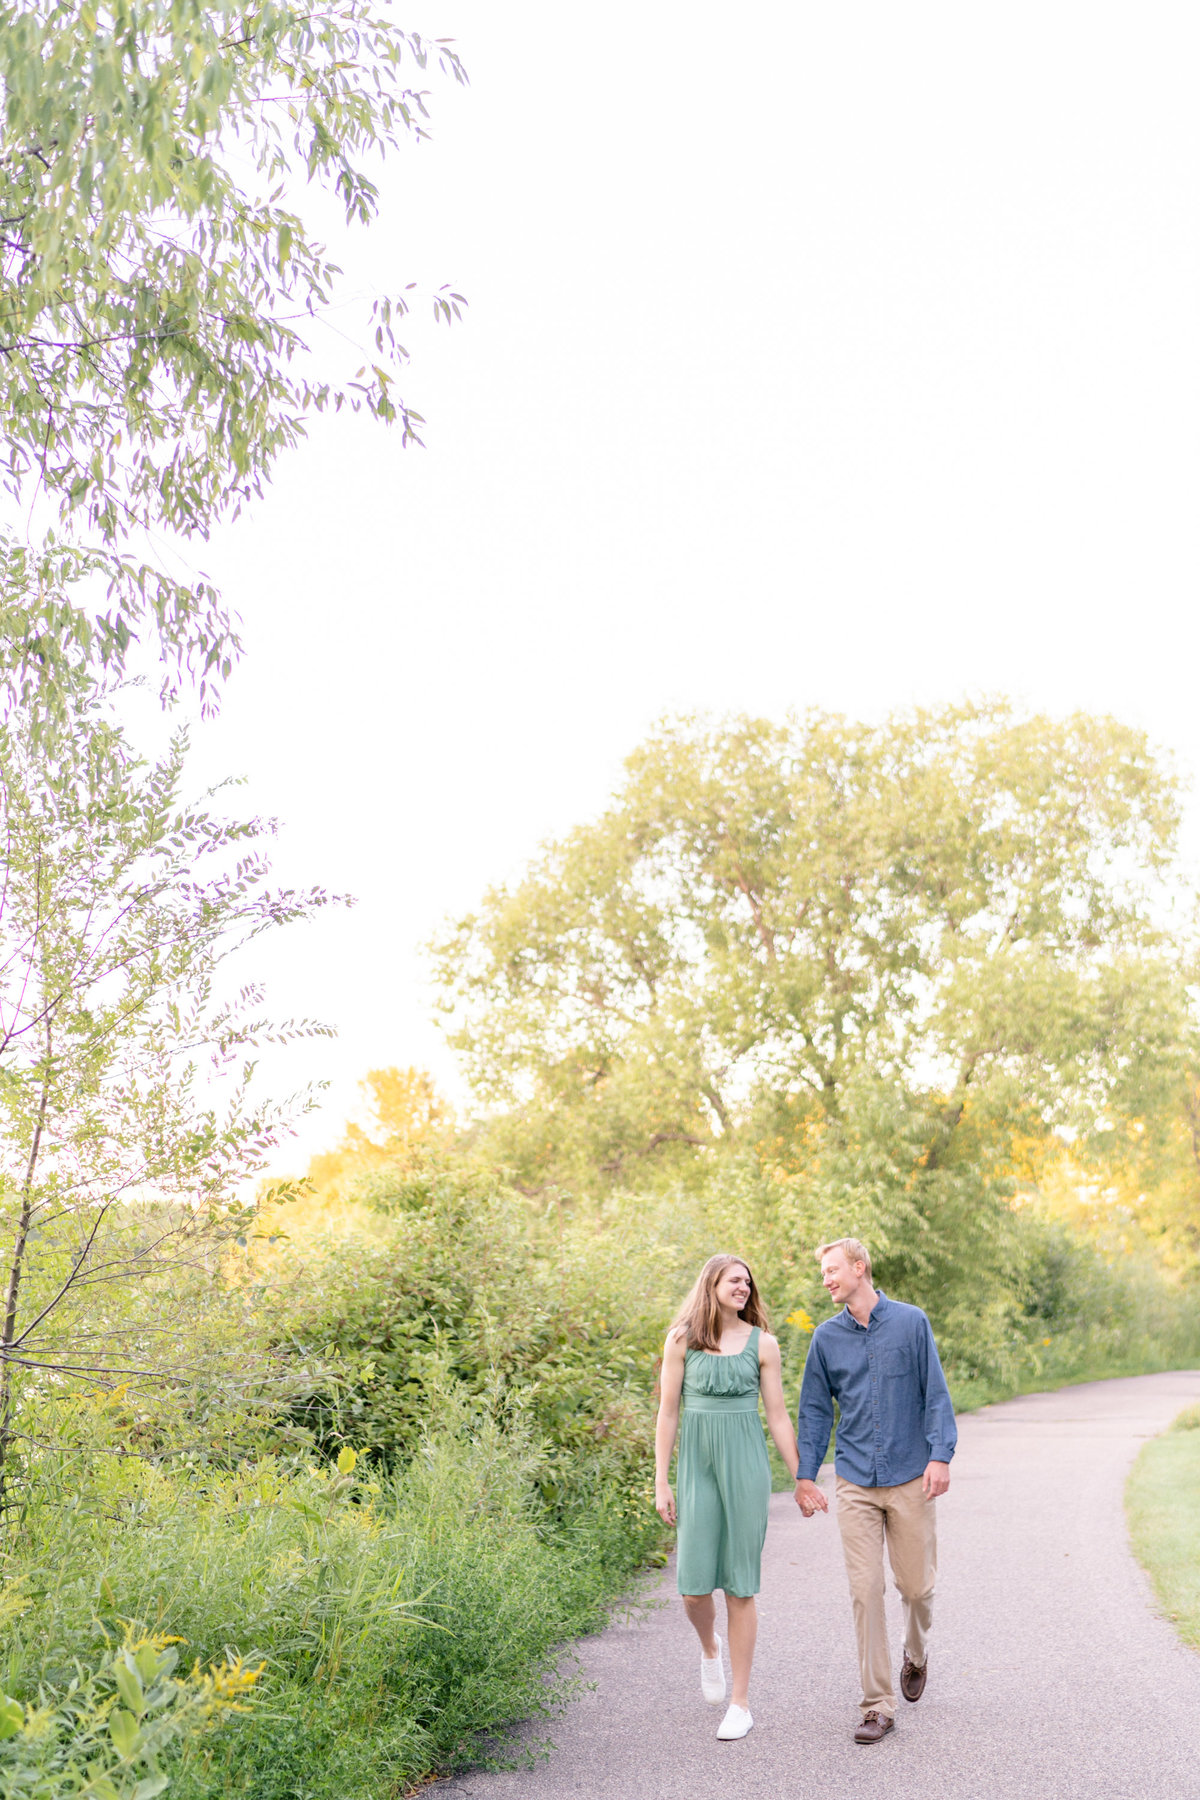 Jennifer_Sanders_Photography-0420-engagements-006